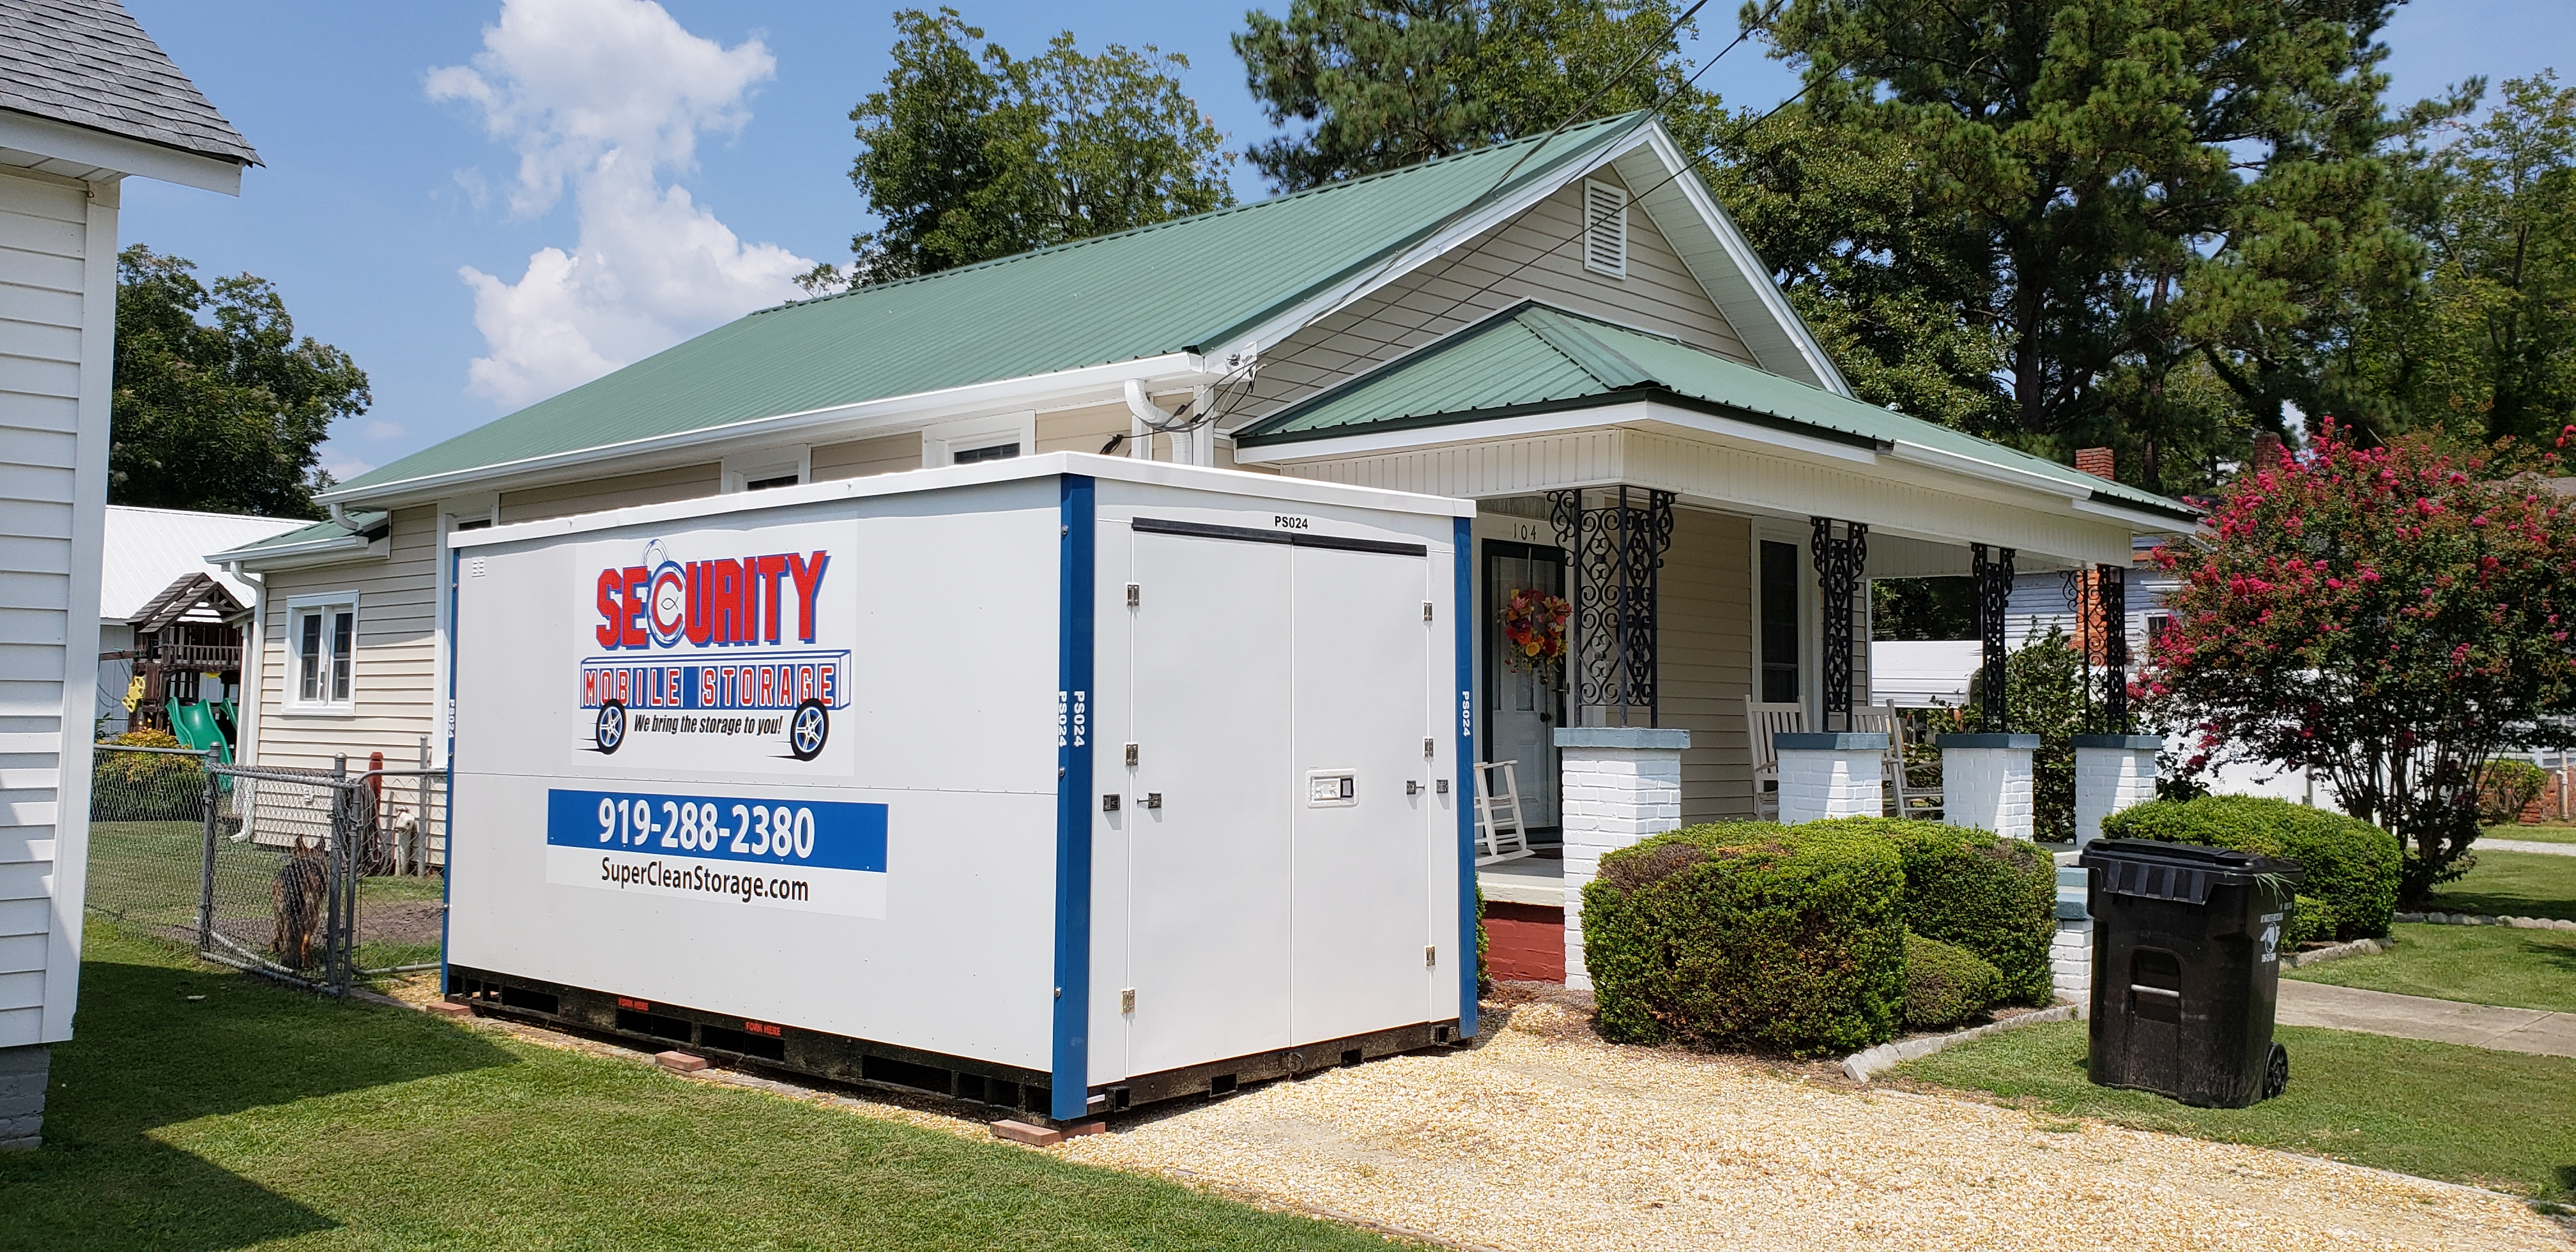 Portable Storage Delivered To Your House or Business